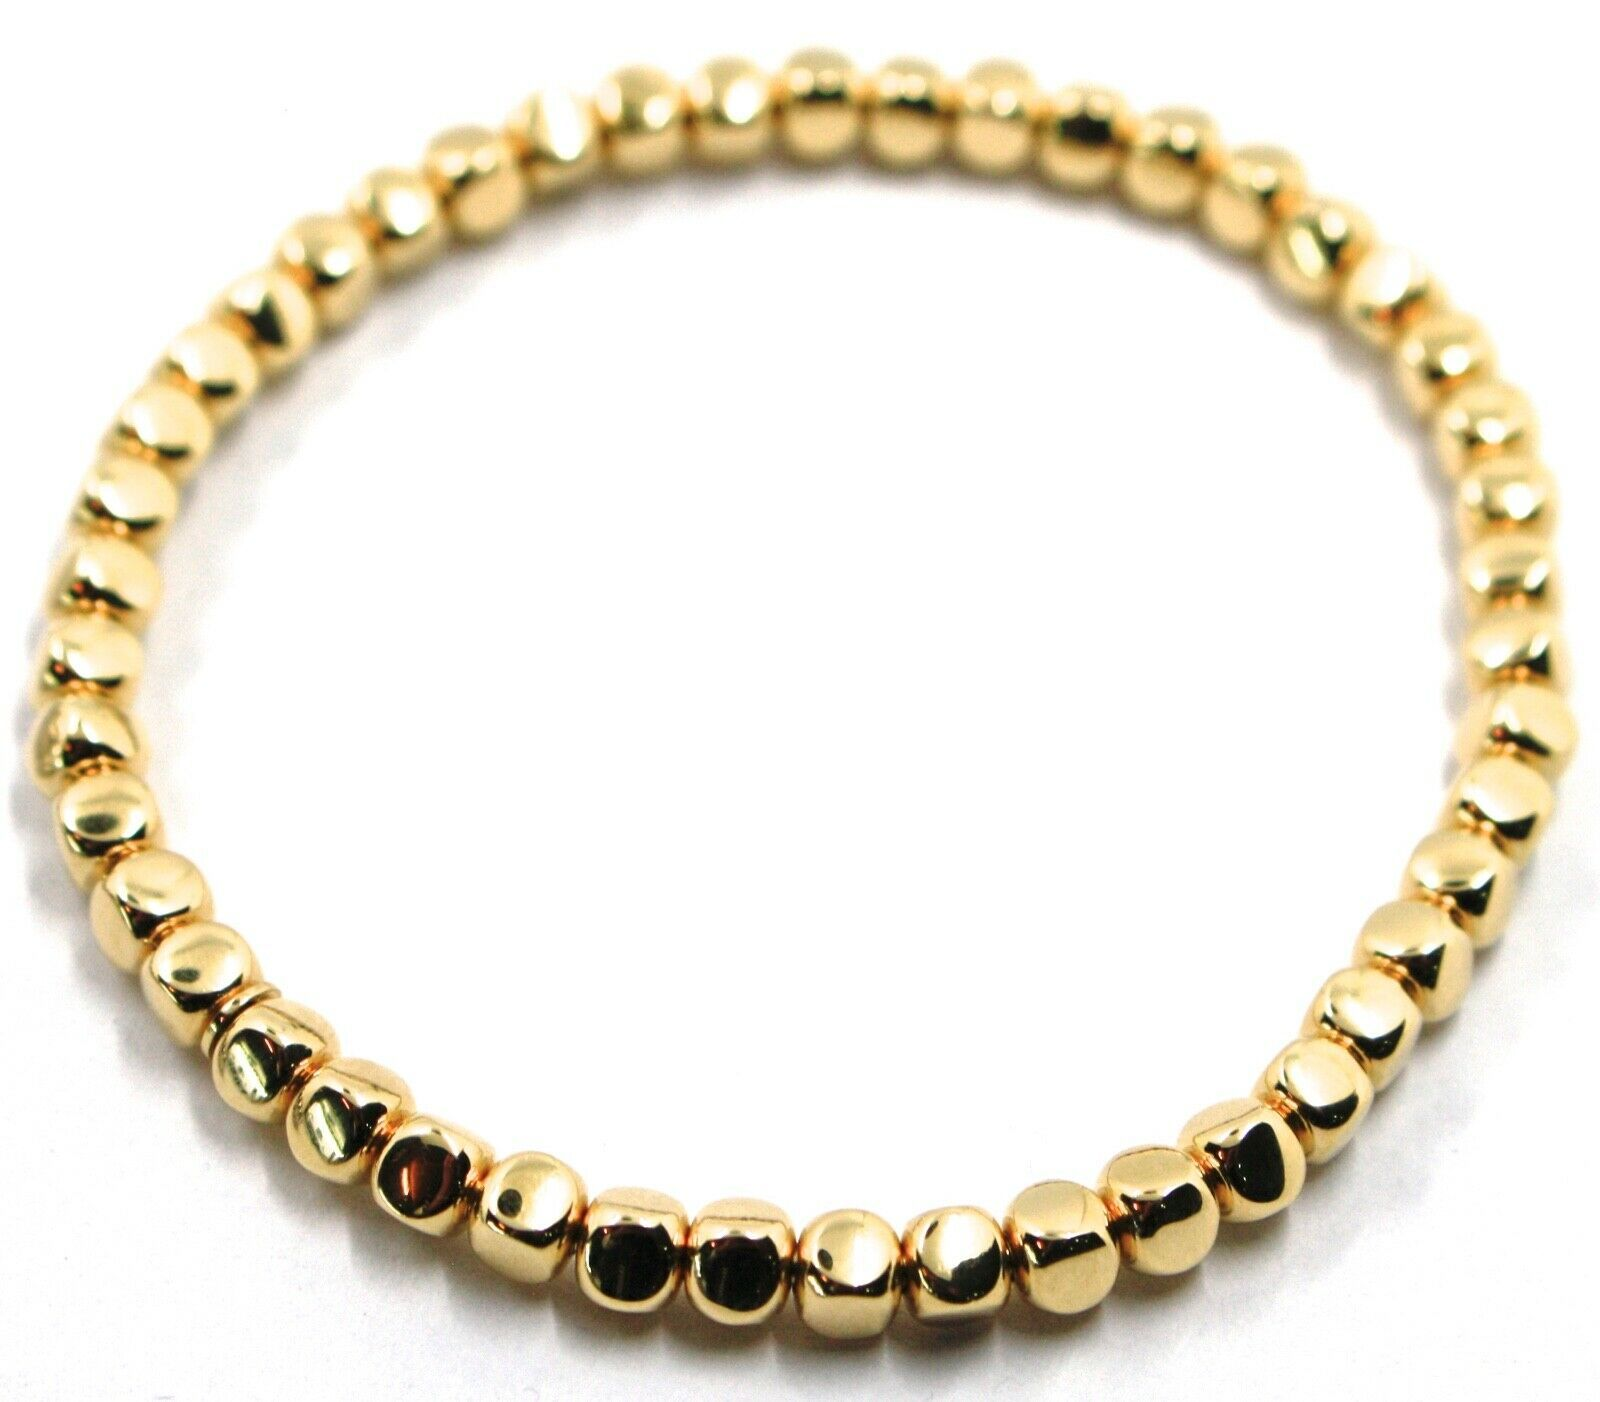 """SOLID 18K YELLOW GOLD ELASTIC BRACELET, CUBES DIAMETER 4 MM 0.16"""", MADE IN ITALY"""